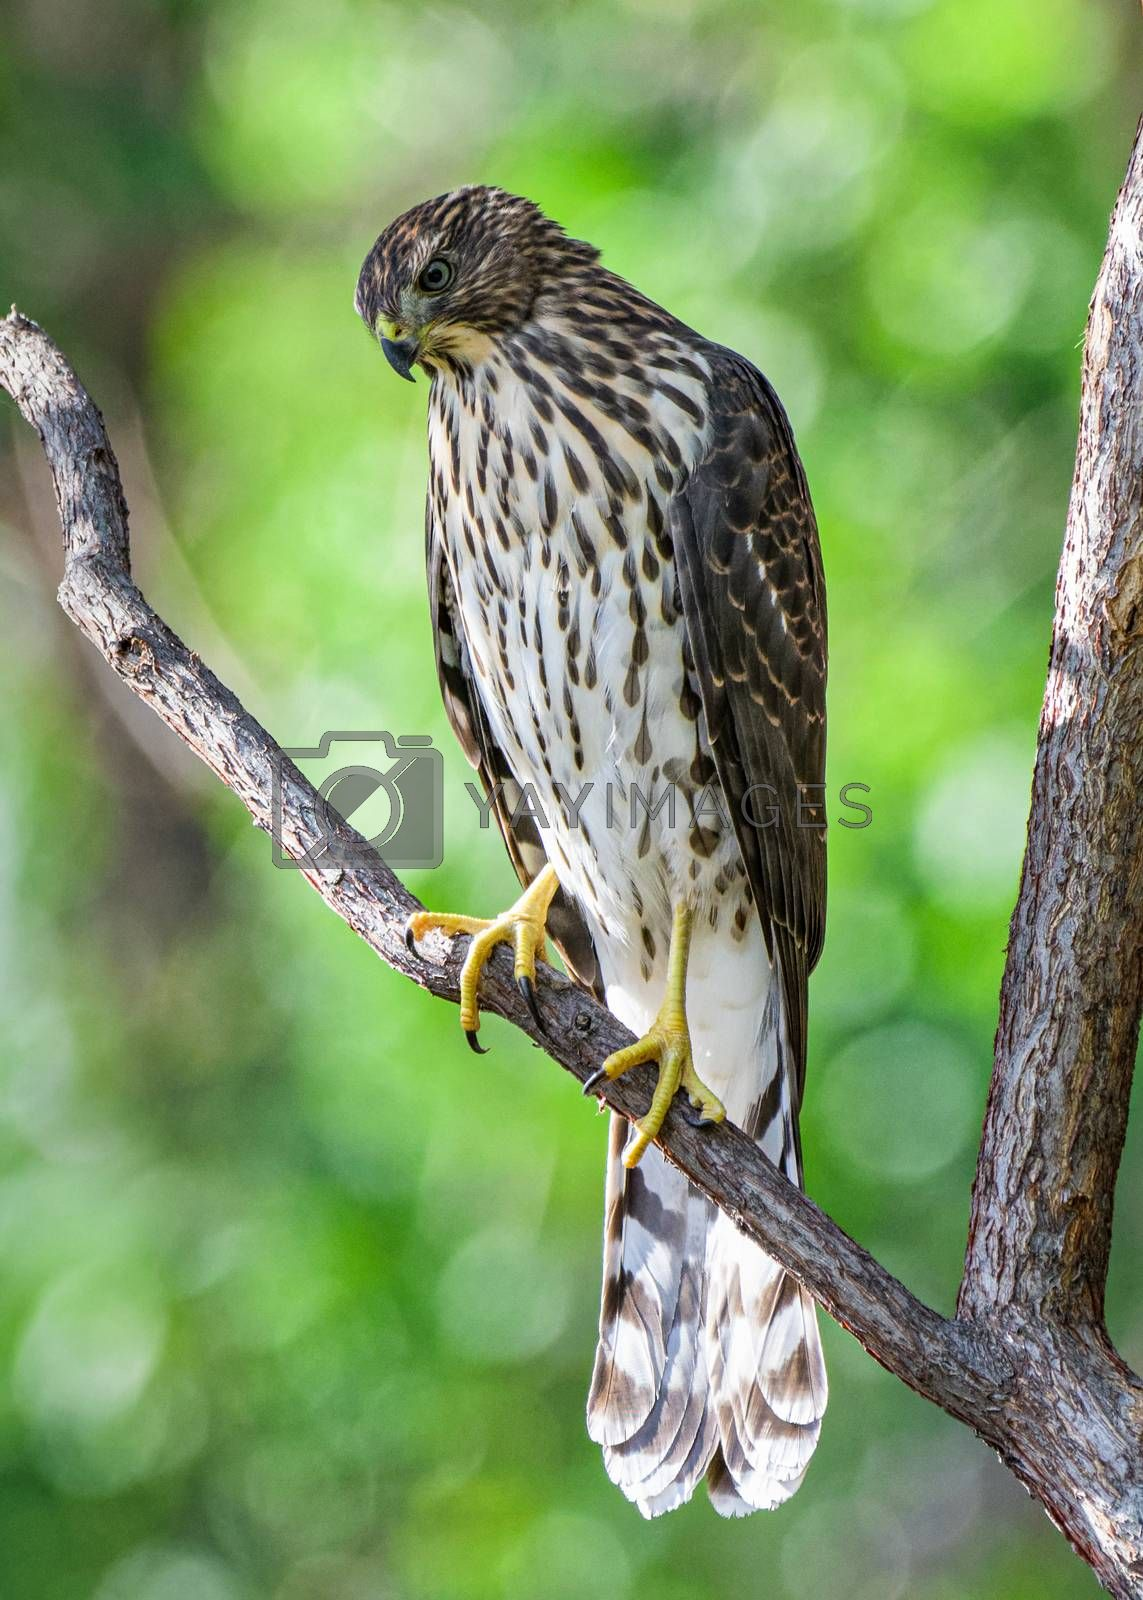 Coopers Hawk Sitting on a Tree Branch by Gary Gray